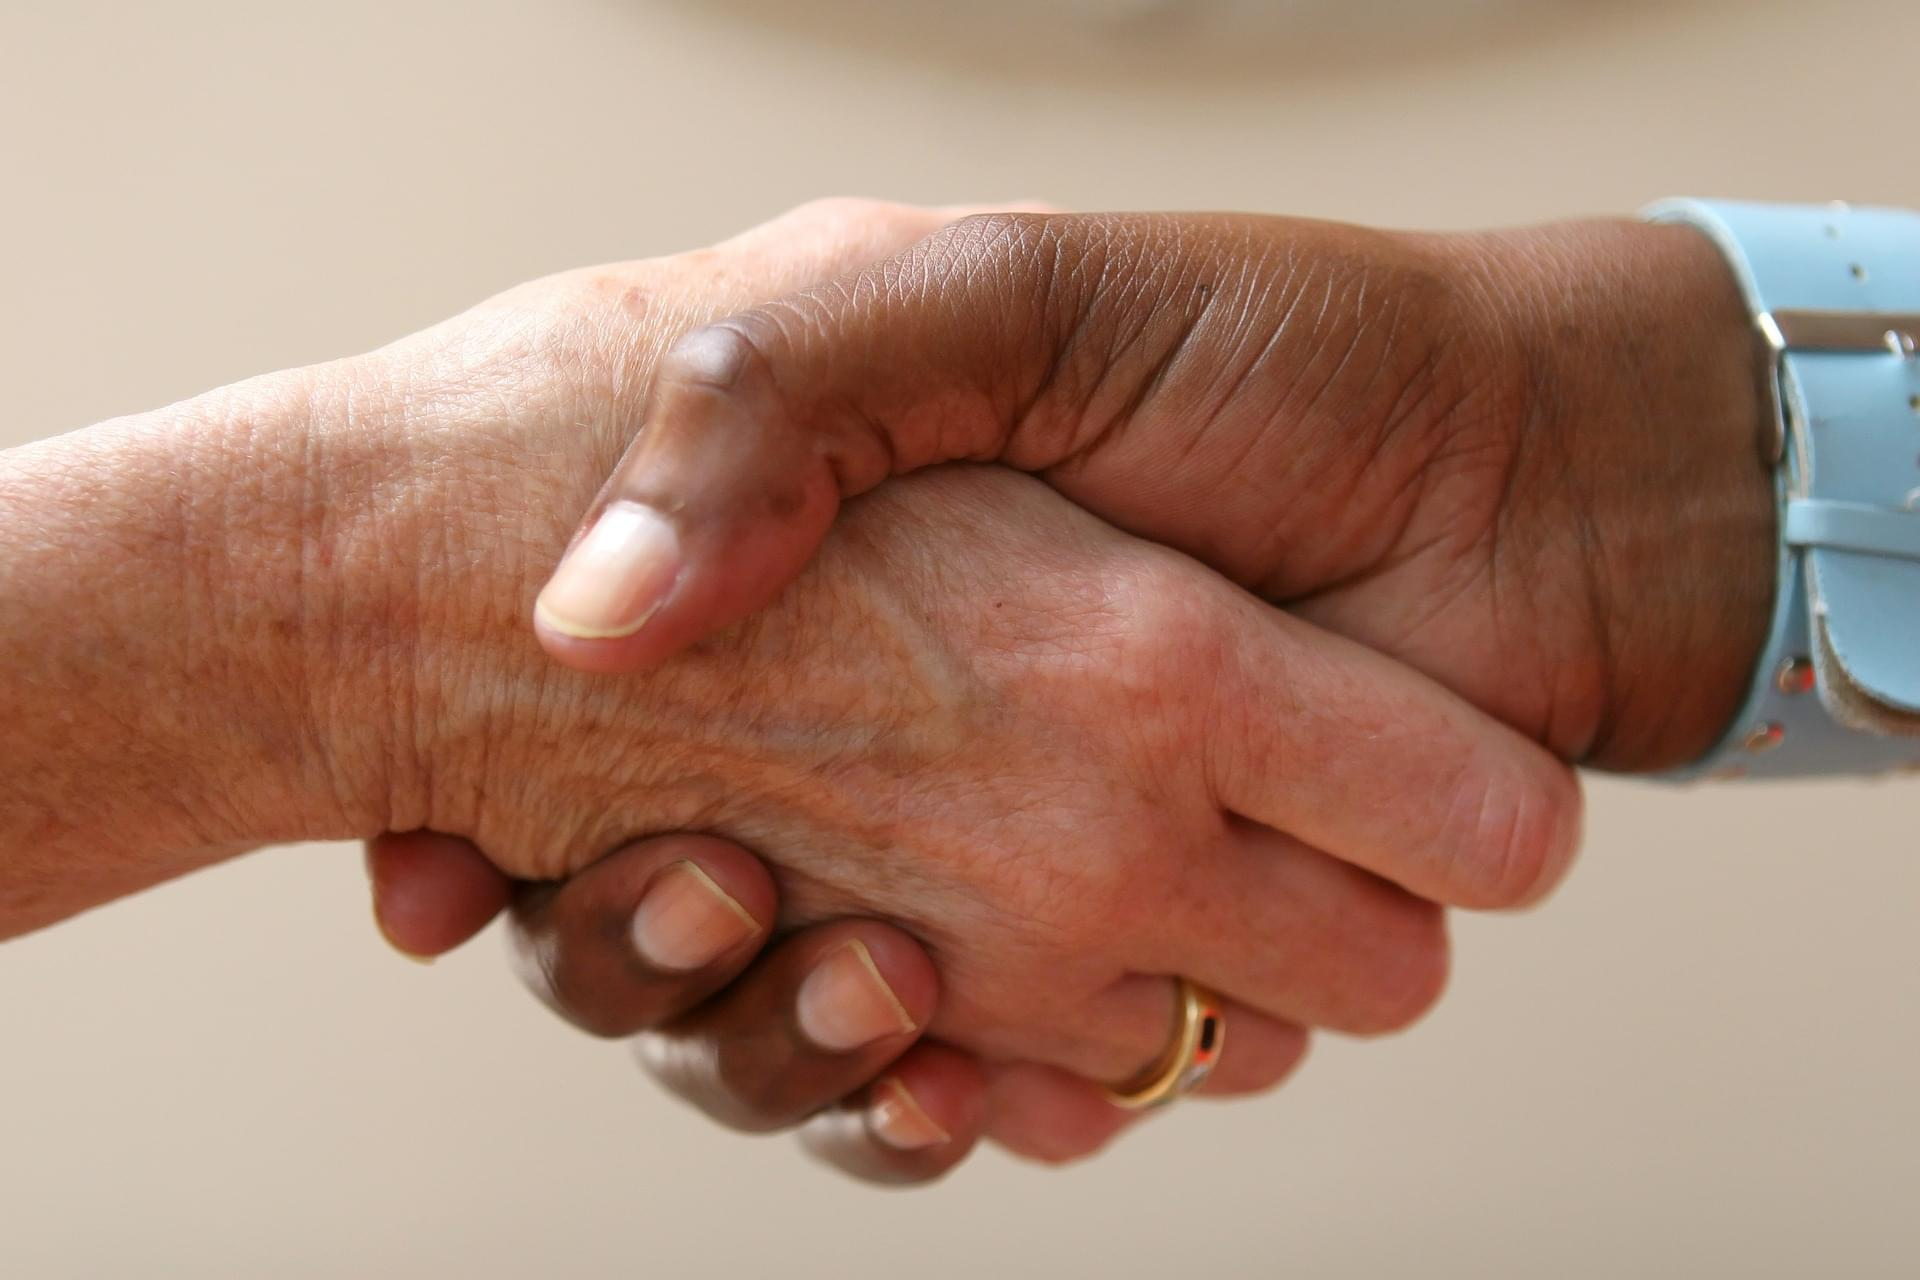 If Handshakes Are Done, What Other Greeting Should We Use?